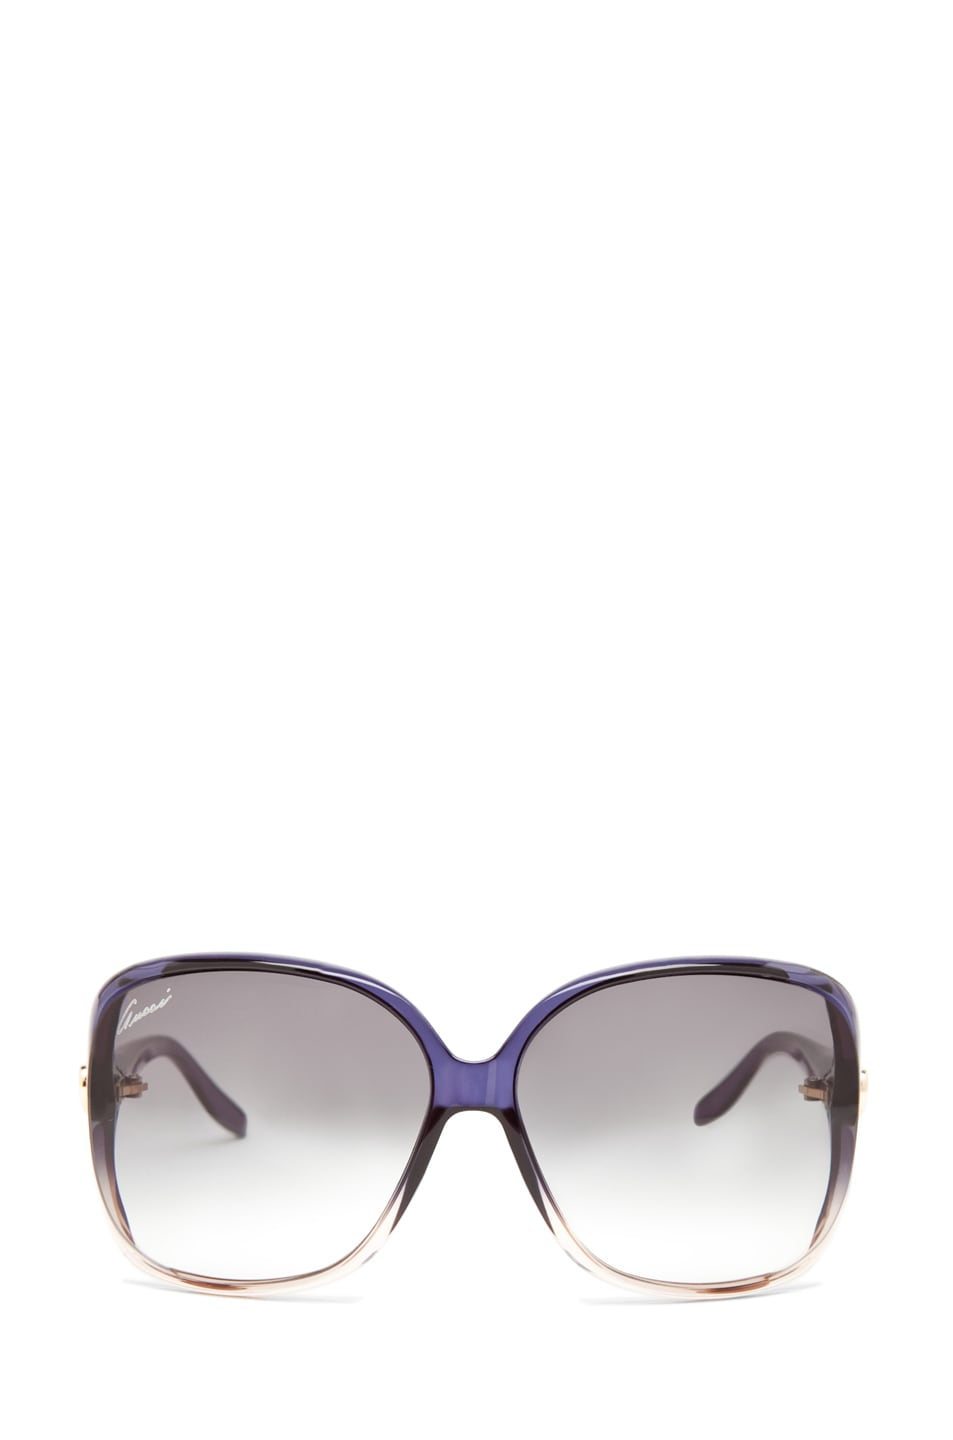 Image 1 of Gucci 3500 Sunglasses in Shiny Blue